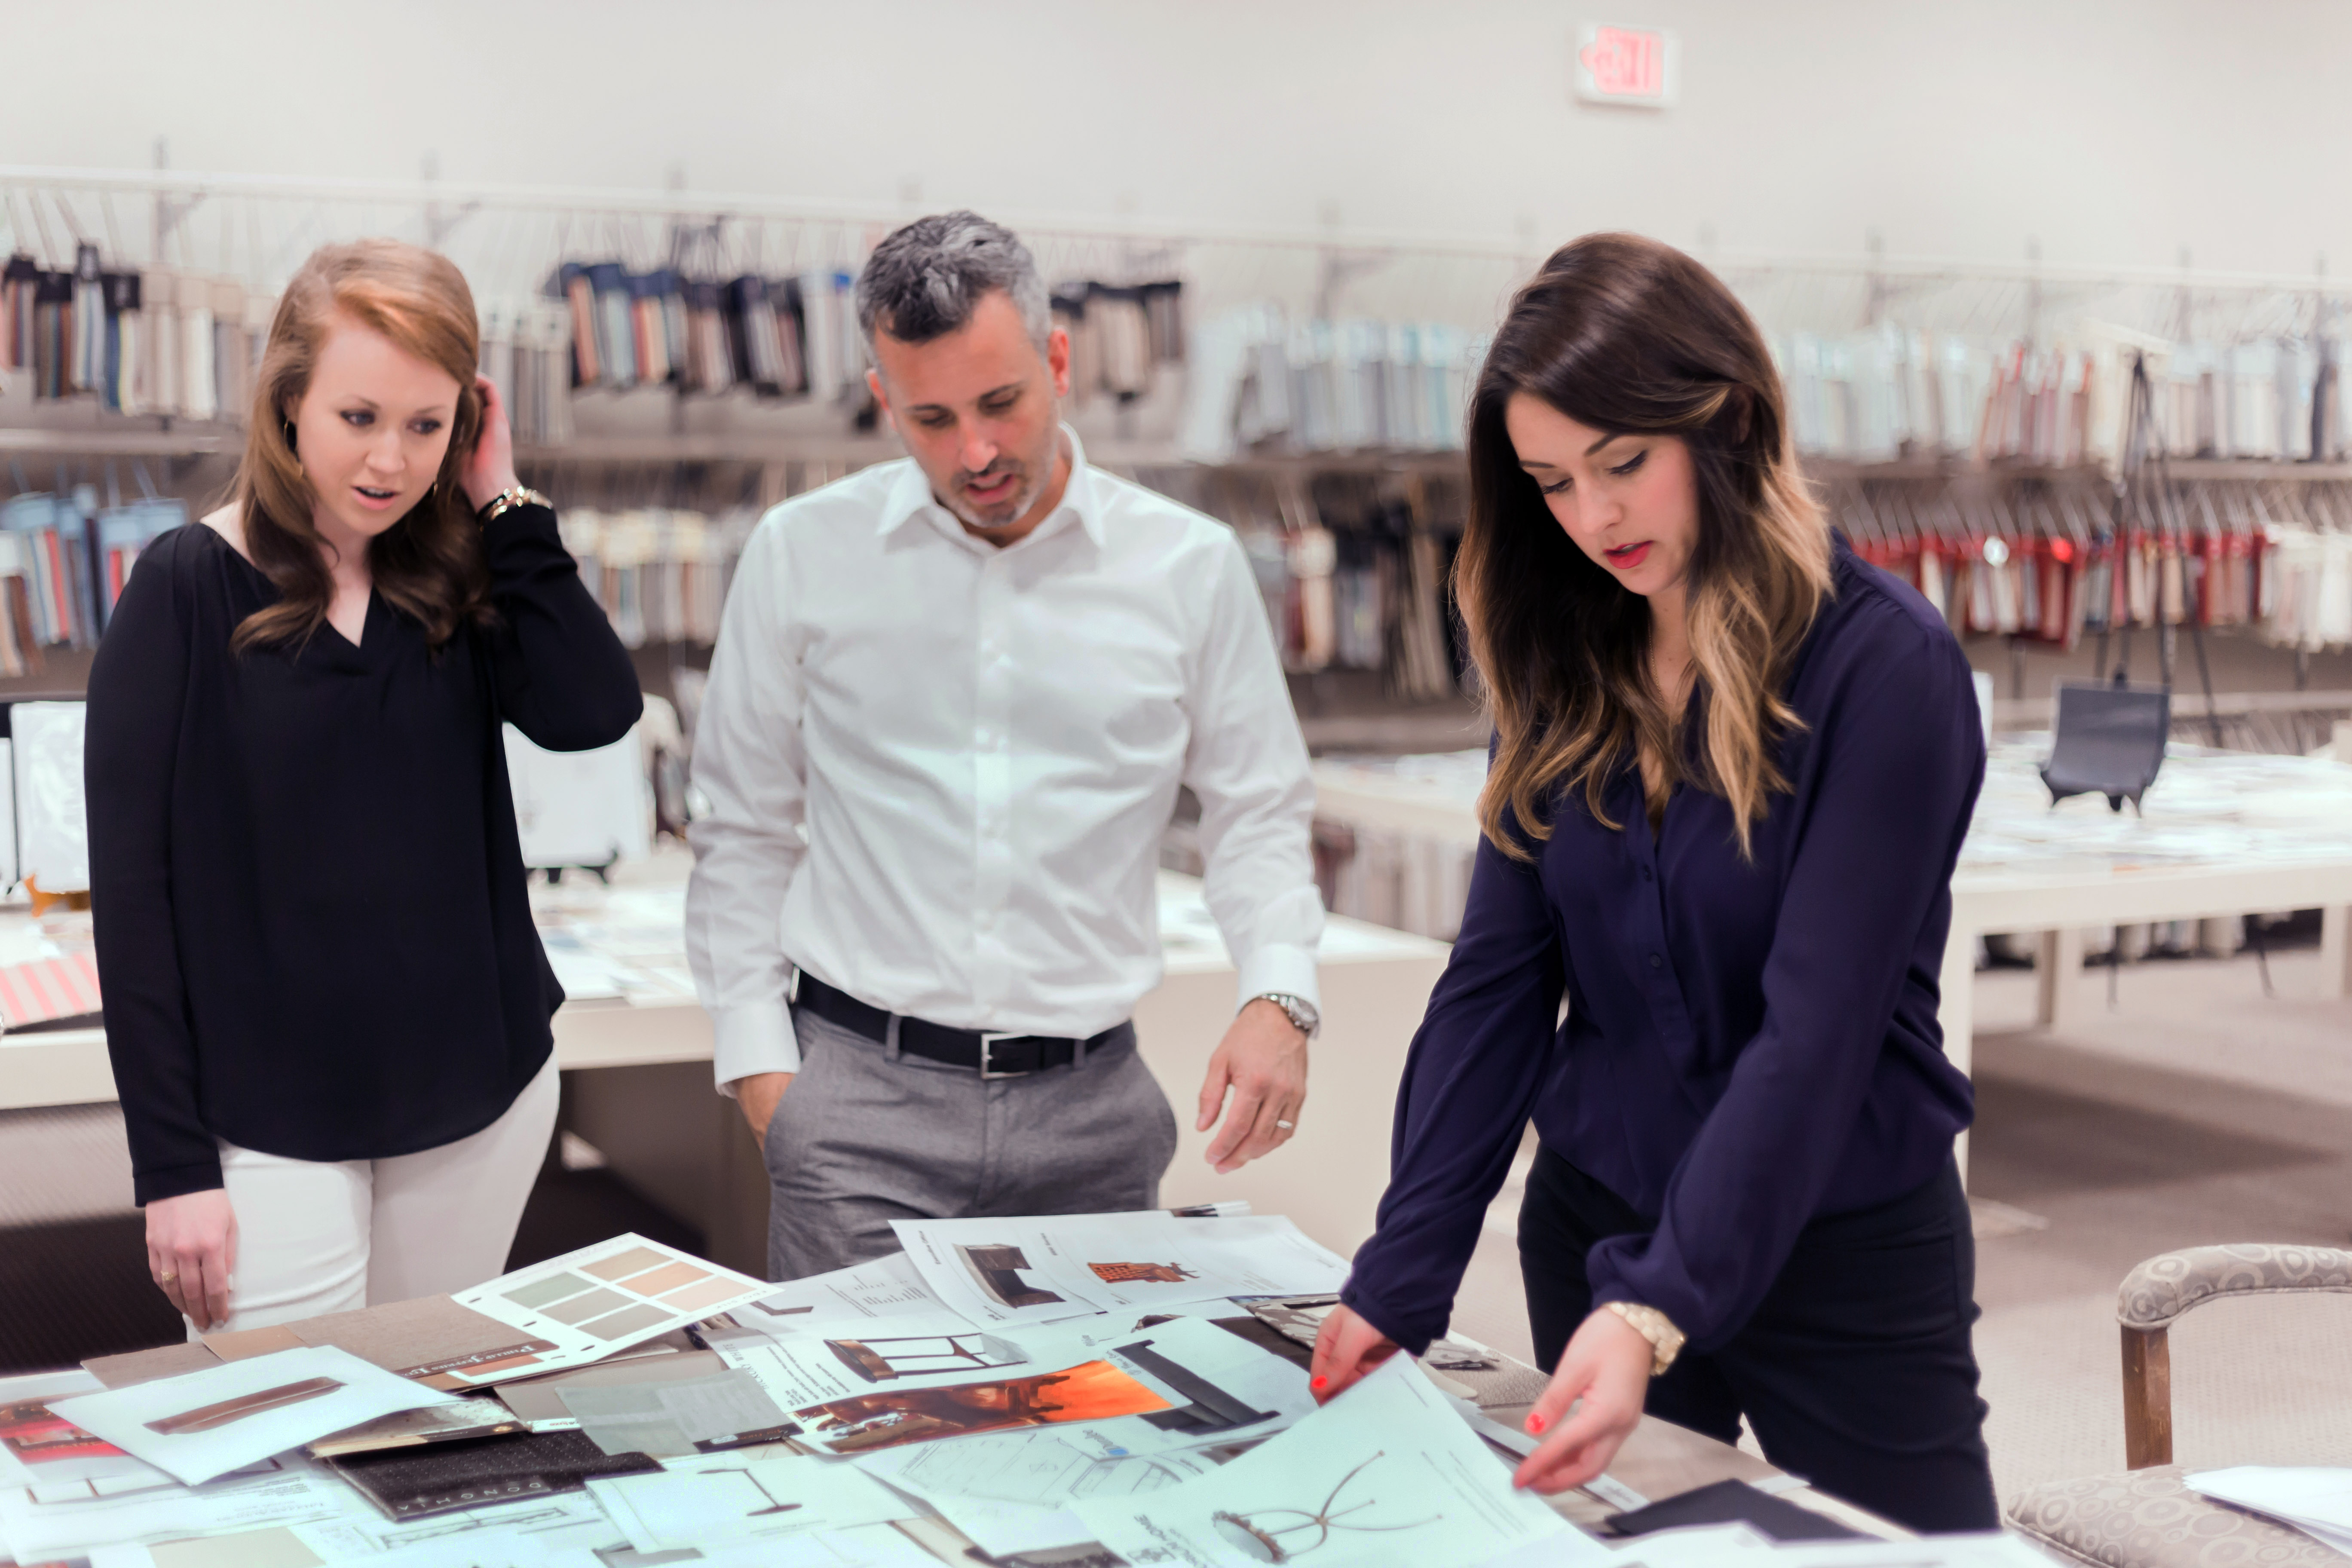 FSU Graduate Pineapple House Senior Designer Zach Azpeitia Is Shown With Designers Kate Fleming And Katie Moorhouse In The Library